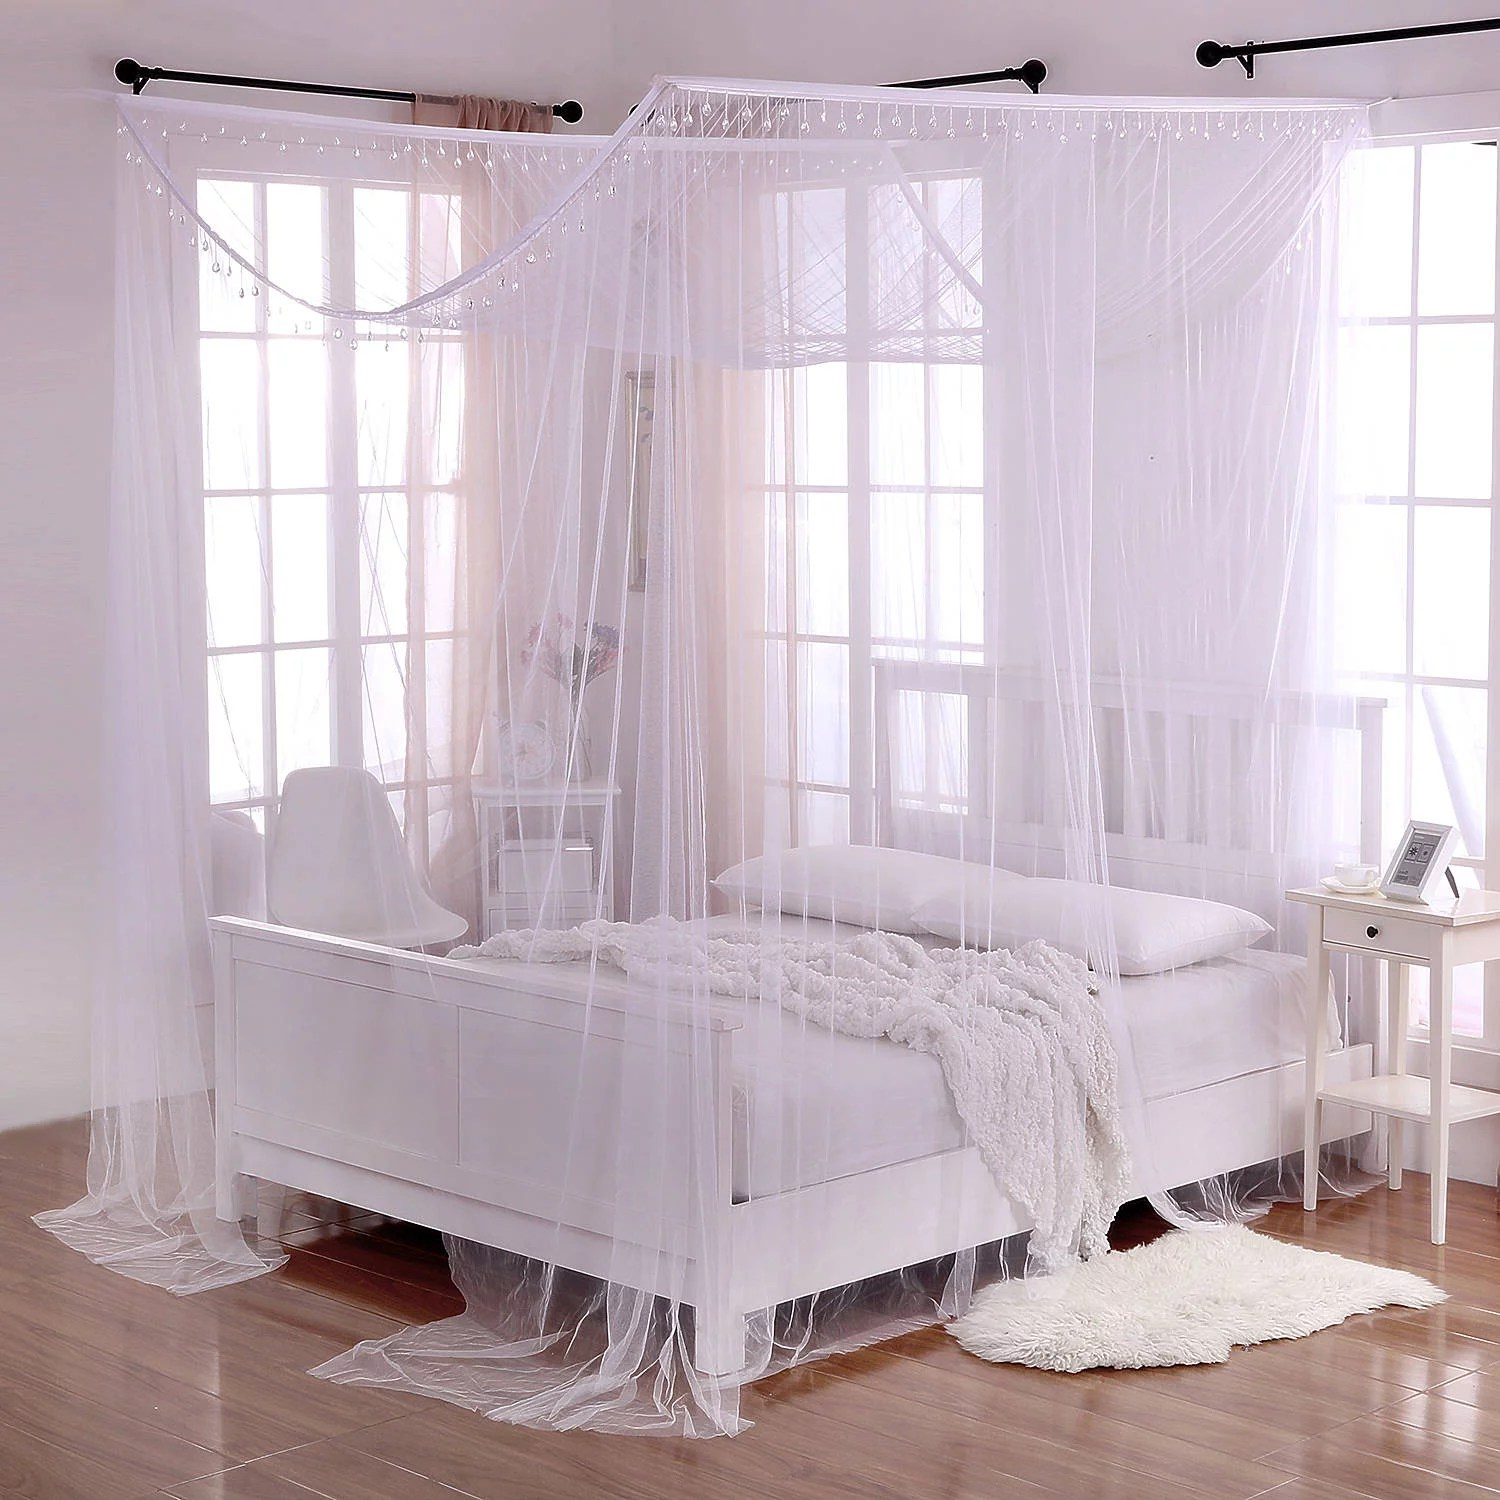 White Crystal Palace 4 Post Bed Sheer Mosquito Net Panel Canopy Walmart Com Walmart Com